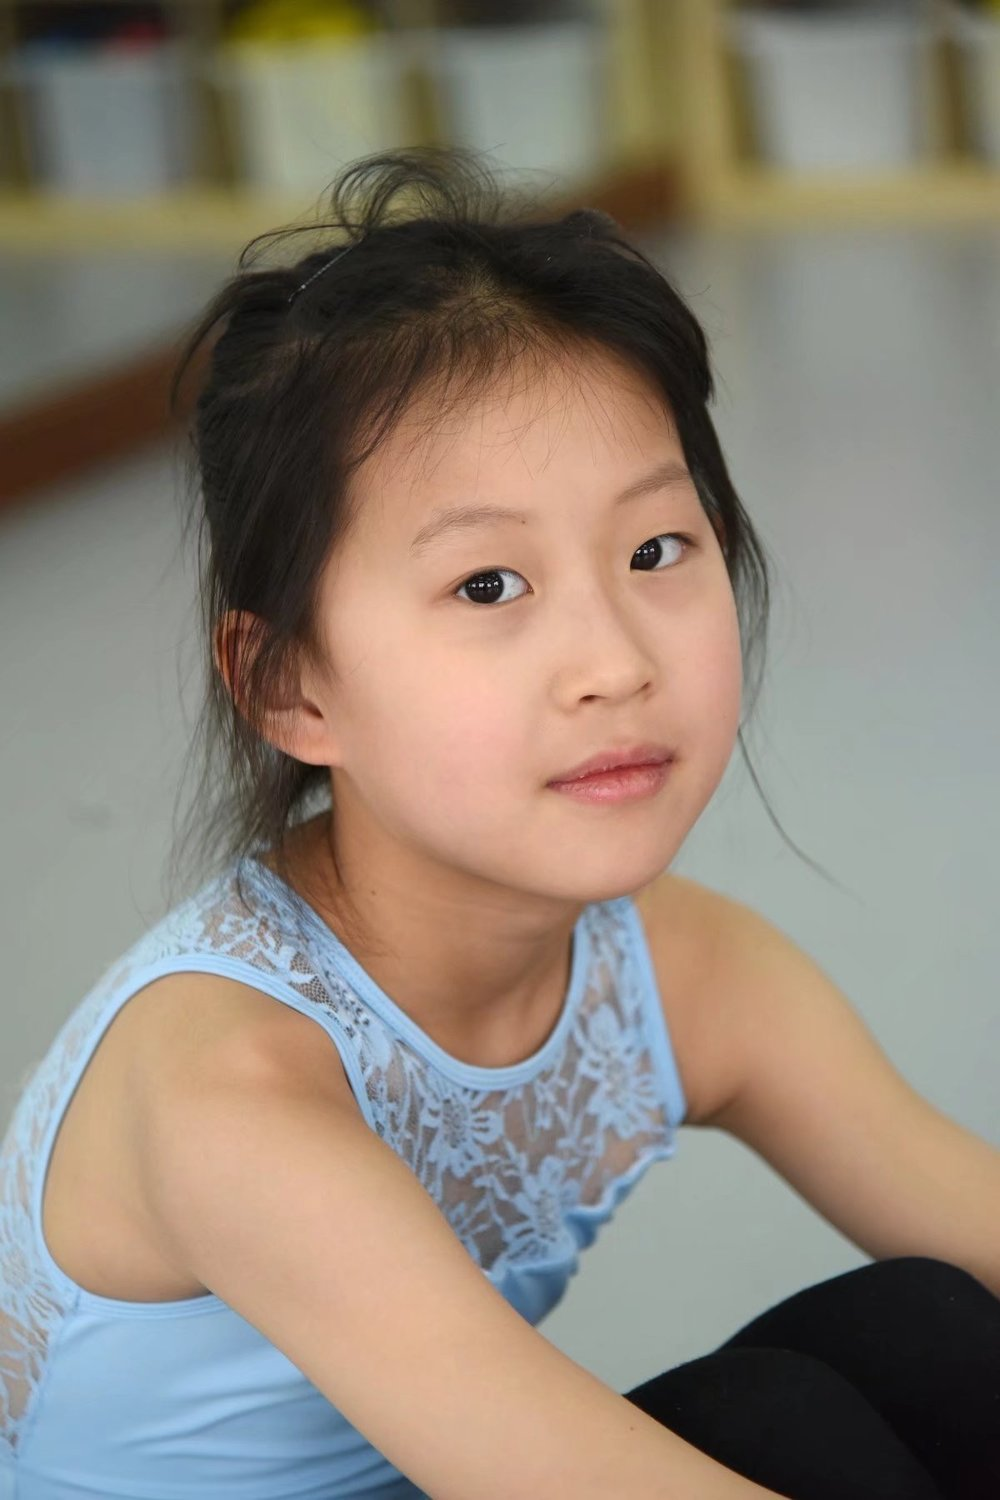 Ivy   Ivy started dancing when she was 3 years old. After joining DWS for 1 year, she has become more confident. Ivy feels that when she dances, she is her true self. The next dance style she hopes to learn is hip hop. Outside of dance, Ivy also loves music, especially singing.